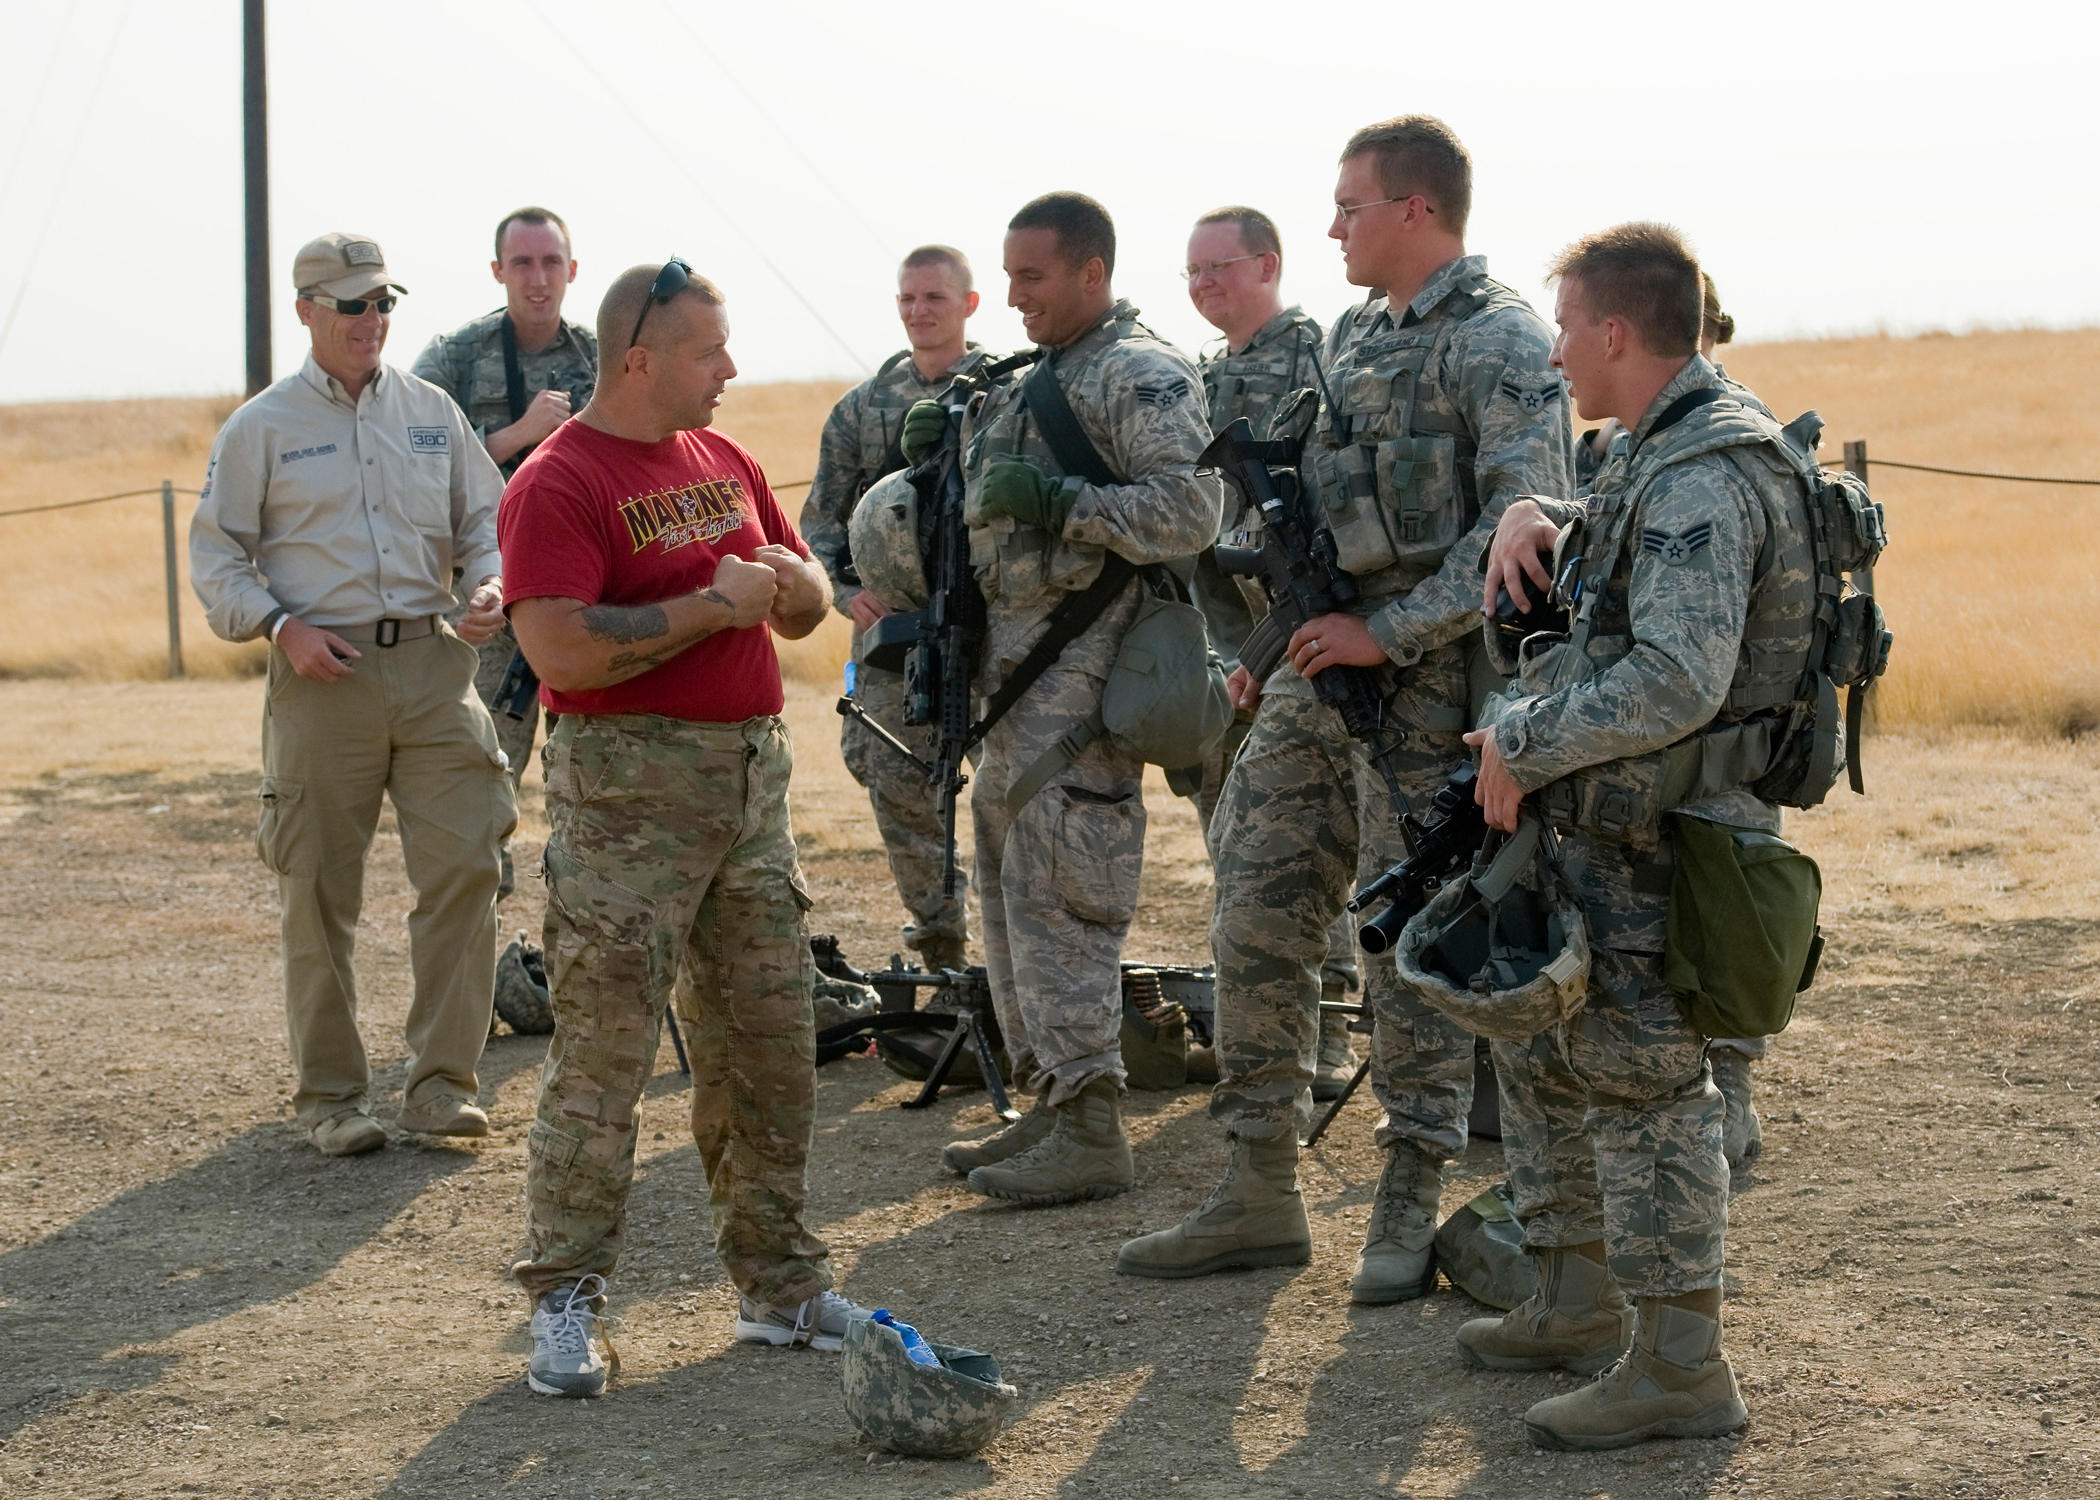 American300 Tour brings wounded vets, stories of survival > Air ...